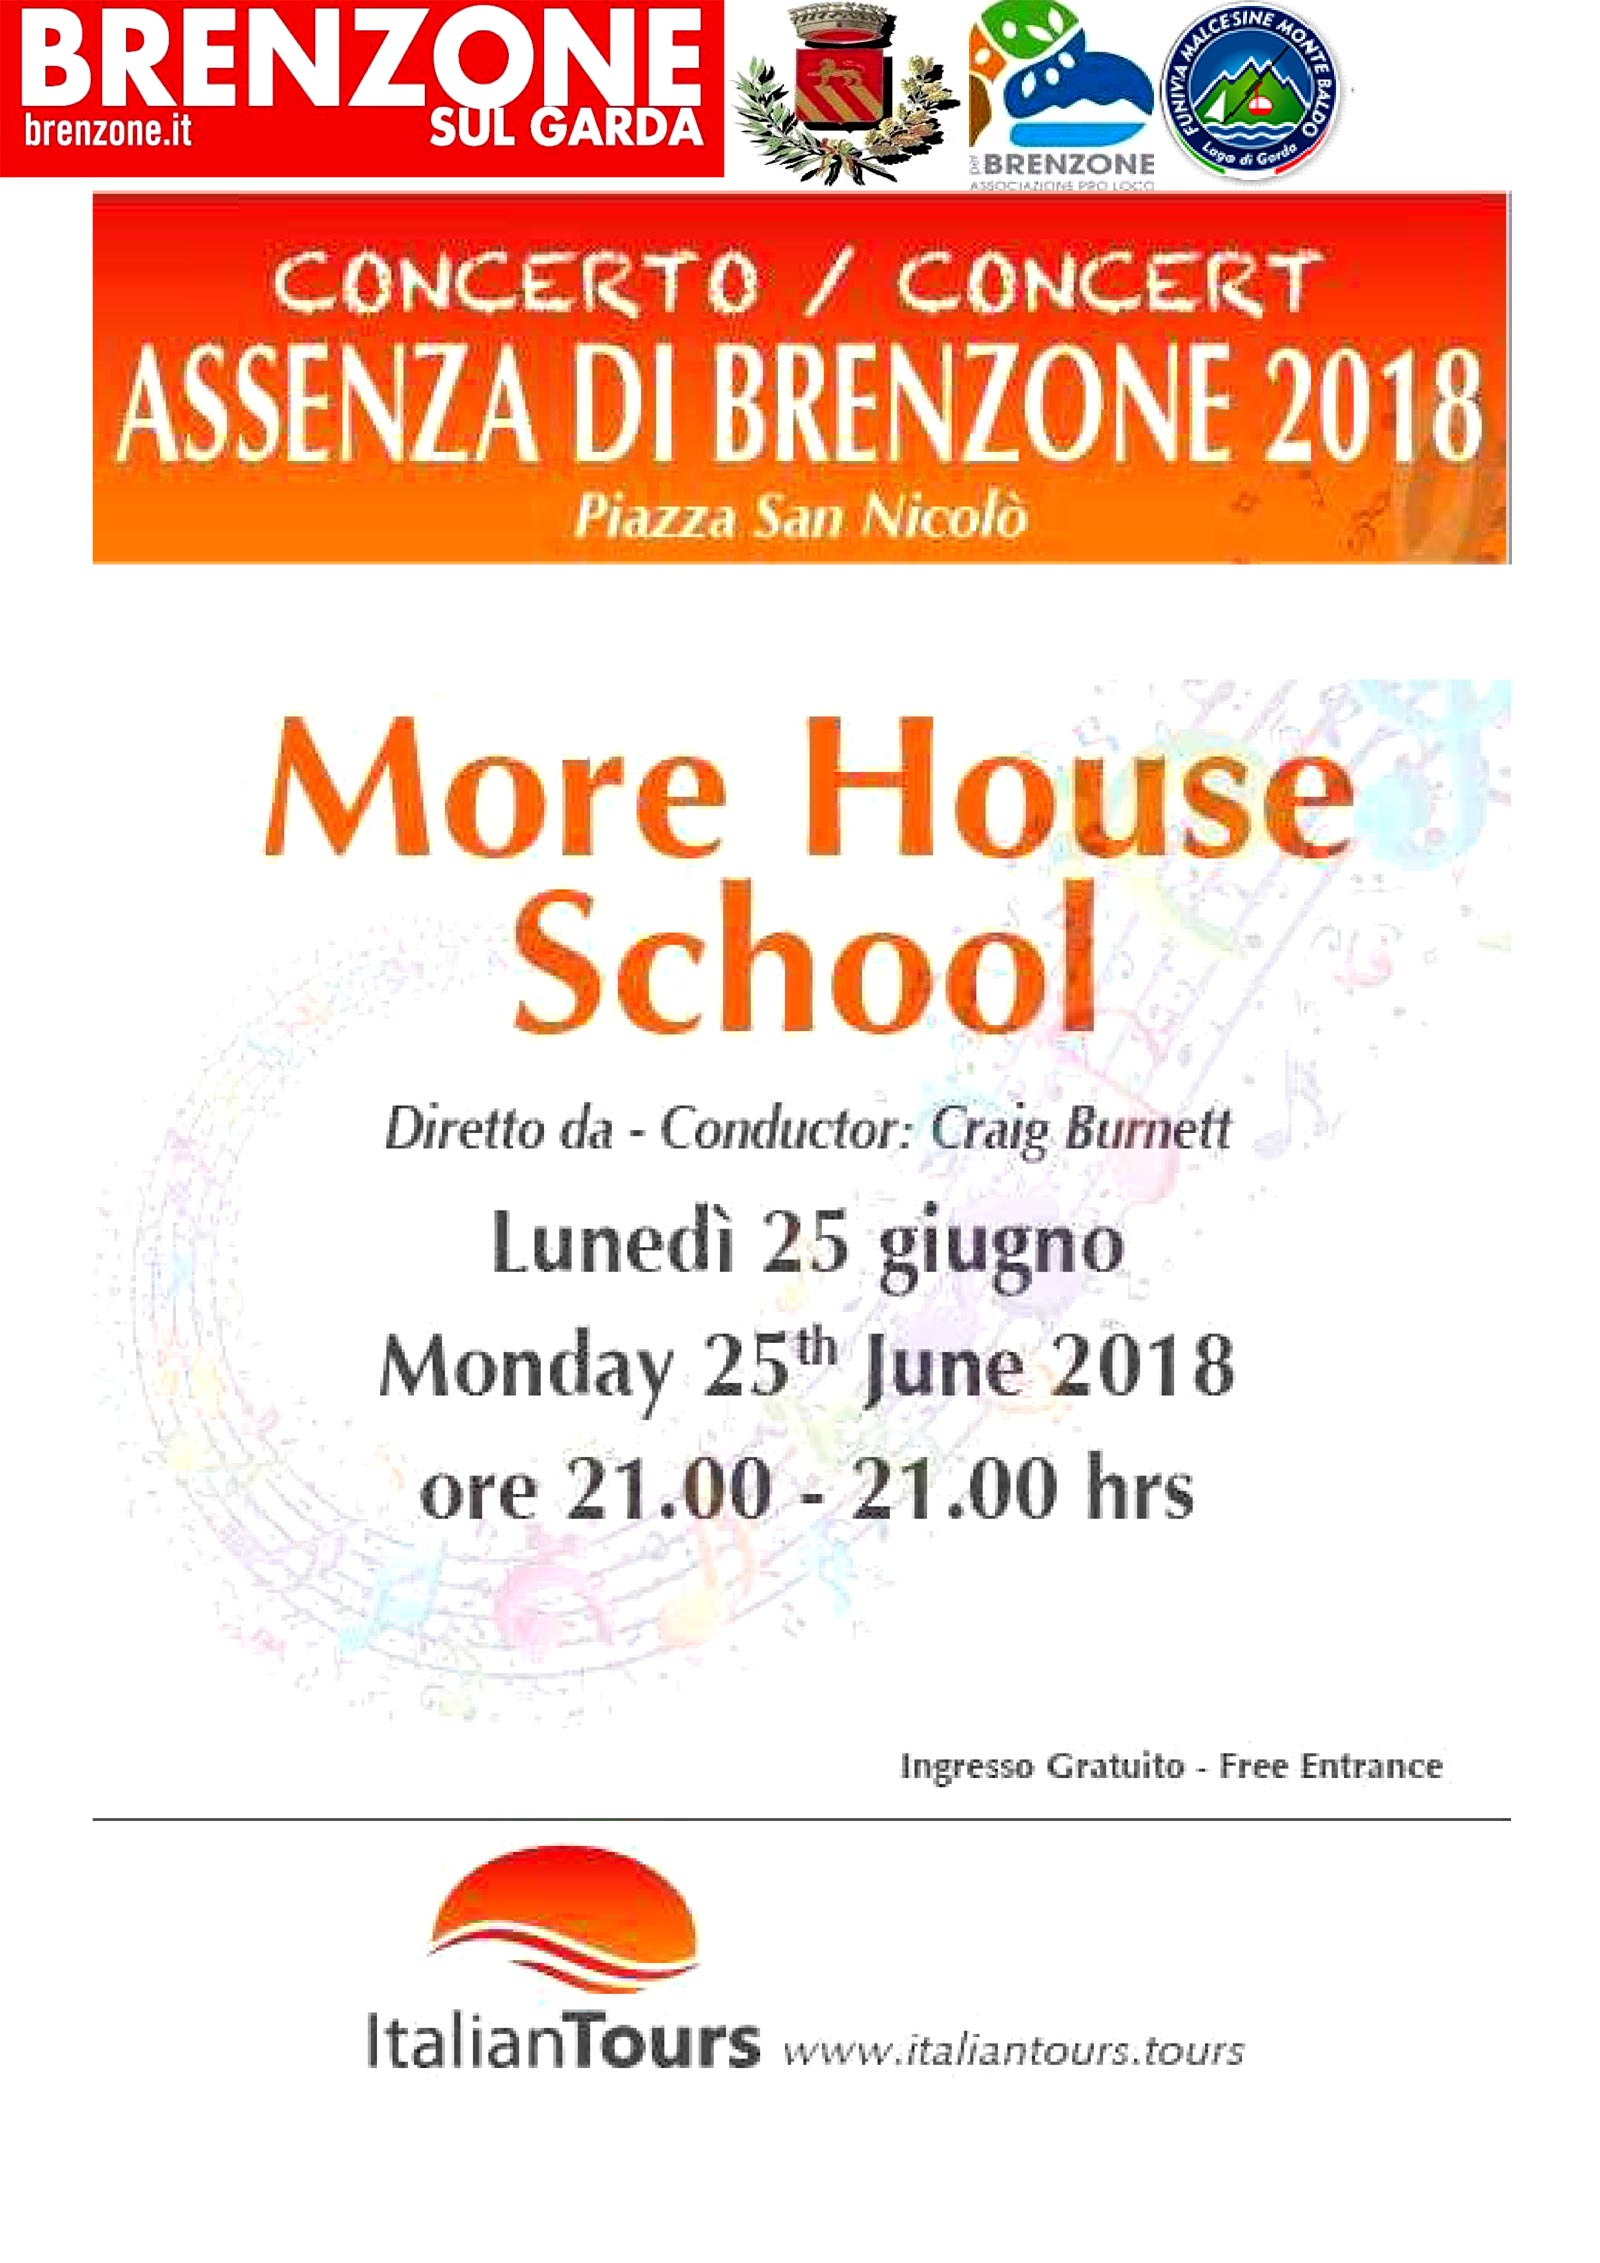 More House School Concerto del 25.06.2018